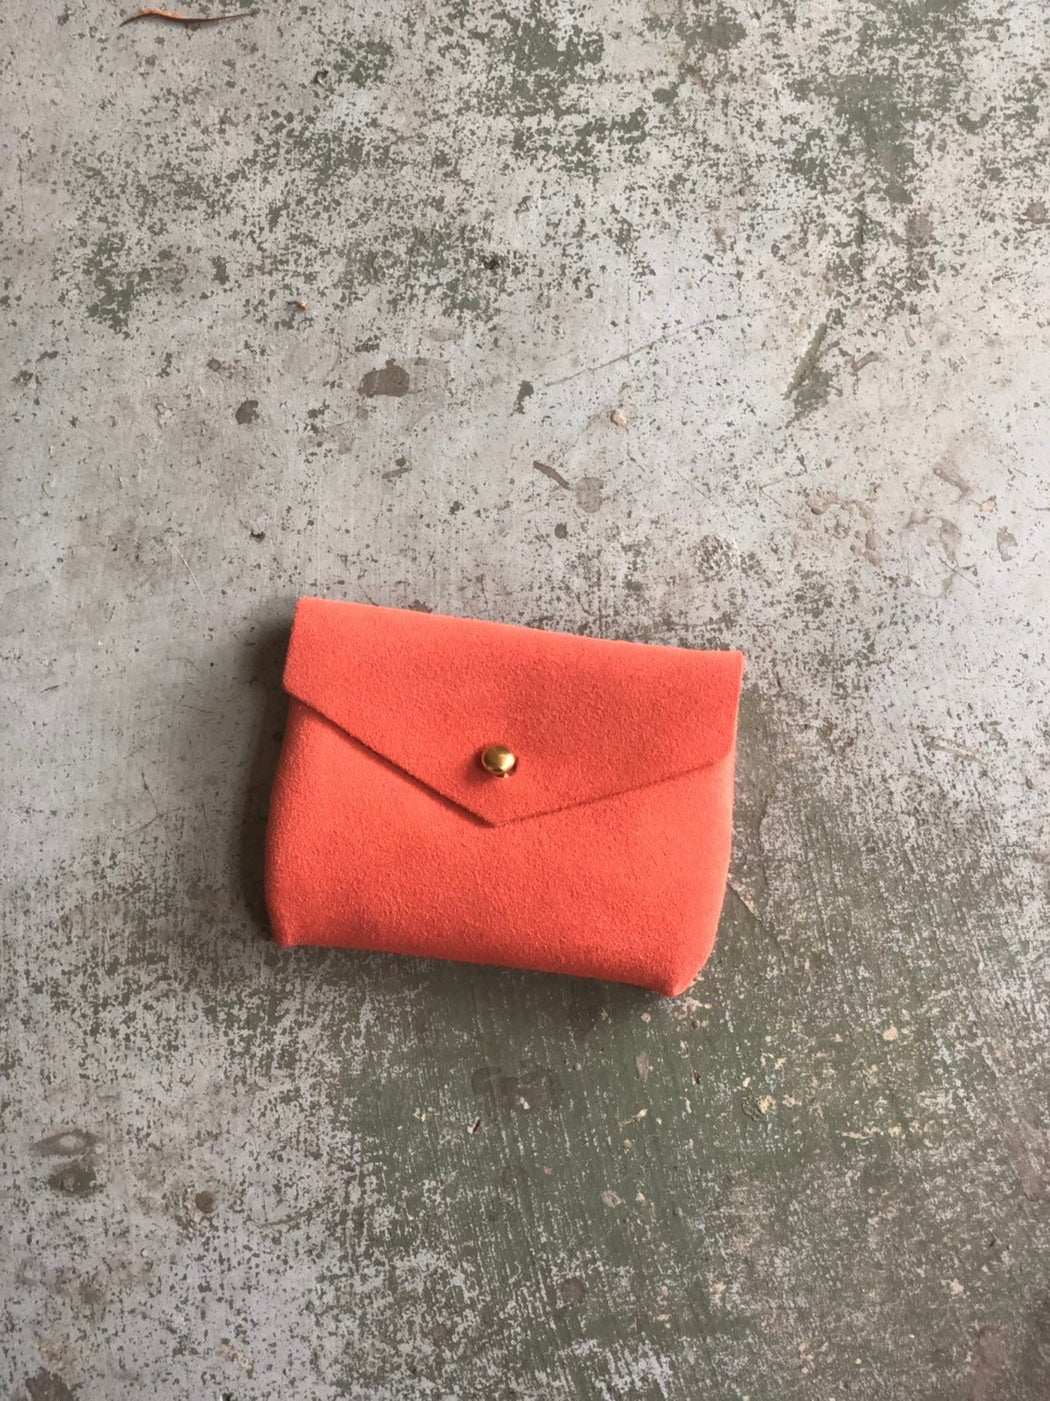 CARD WALLET Tangerine Suede • Business Card Holder • Credit Card Case • Limited Edition